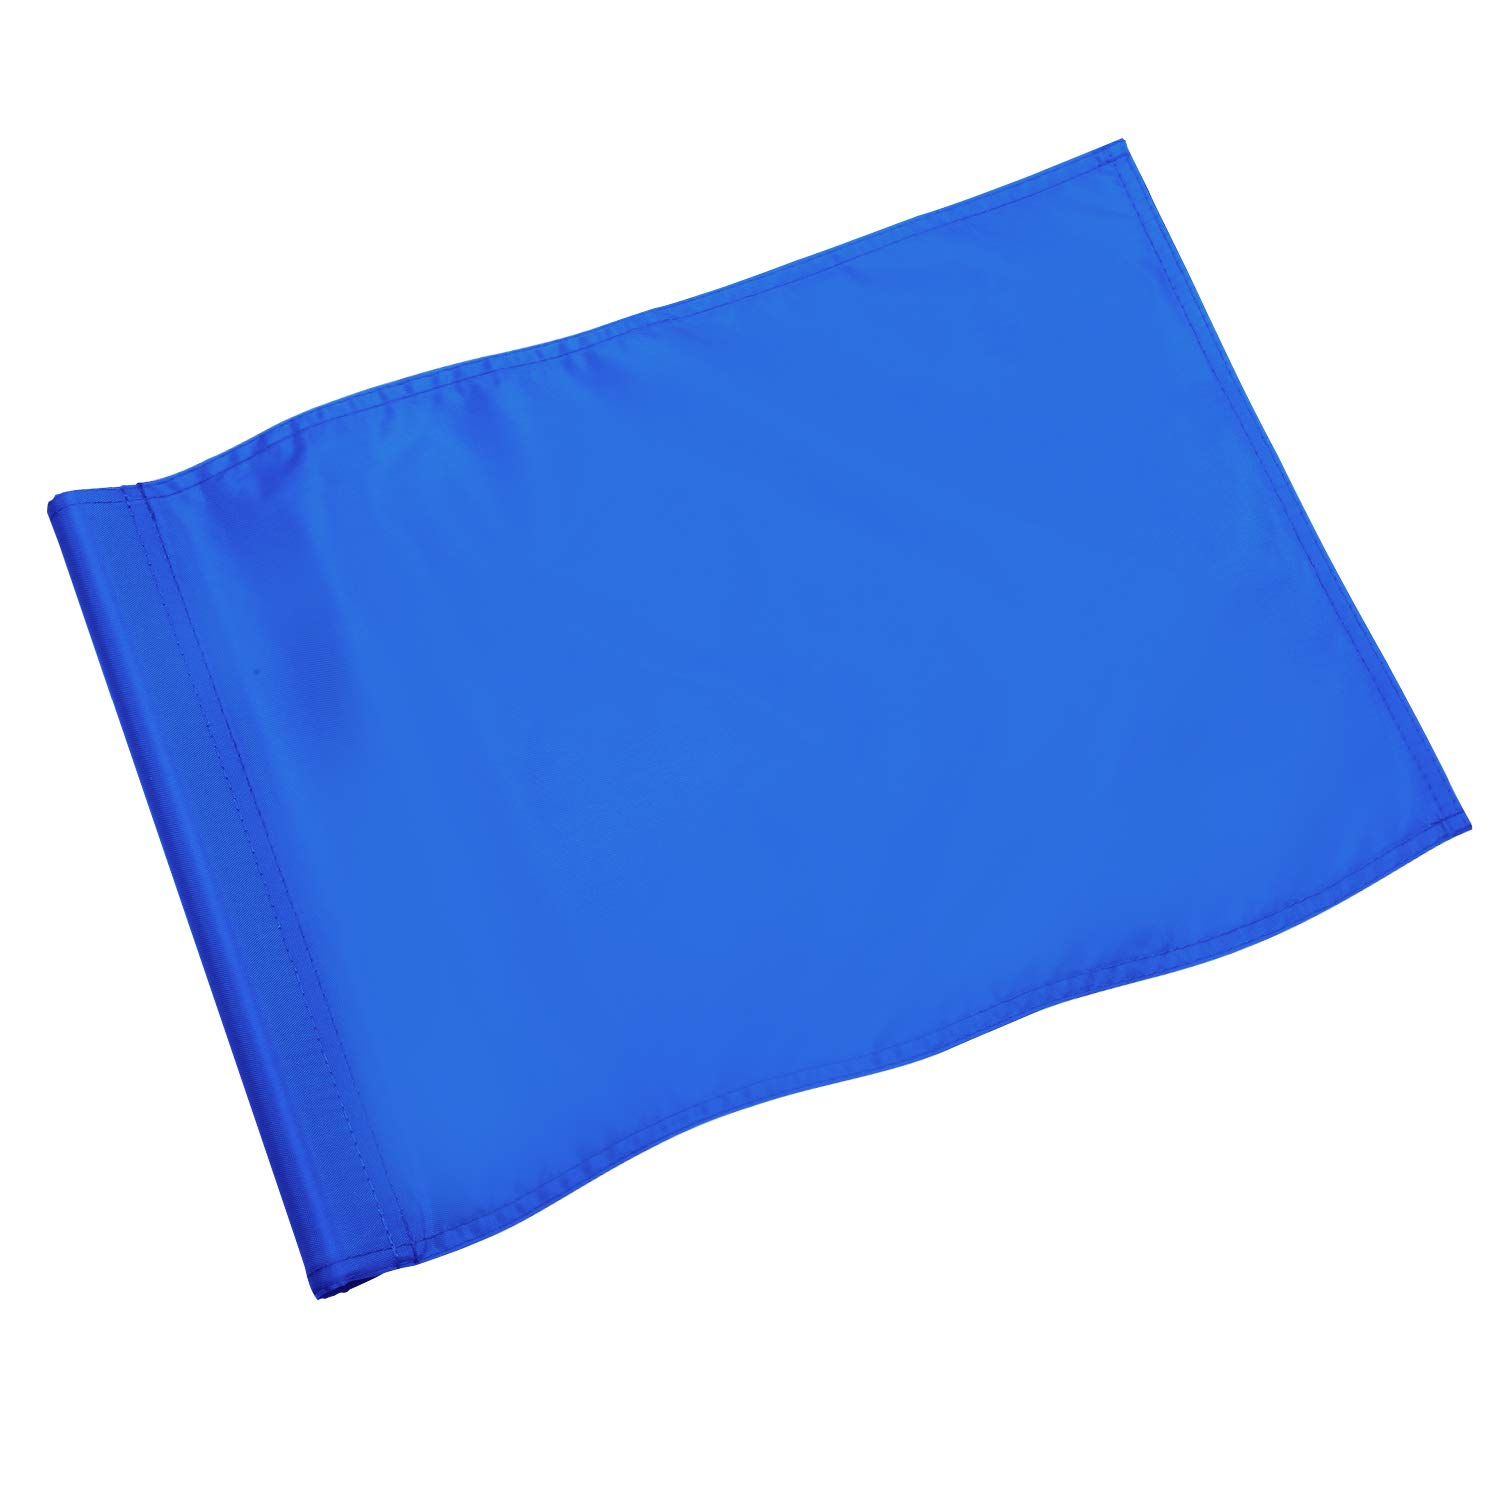 KINGTOP Solid Golf Flag with Plastic Insert, Putting Green Flags for Yard, Indoor/Outdoor, Garden Pin Flags, 420D Premium Nylon Flag, 13'' L x 20'' H, Blue by KINGTOP